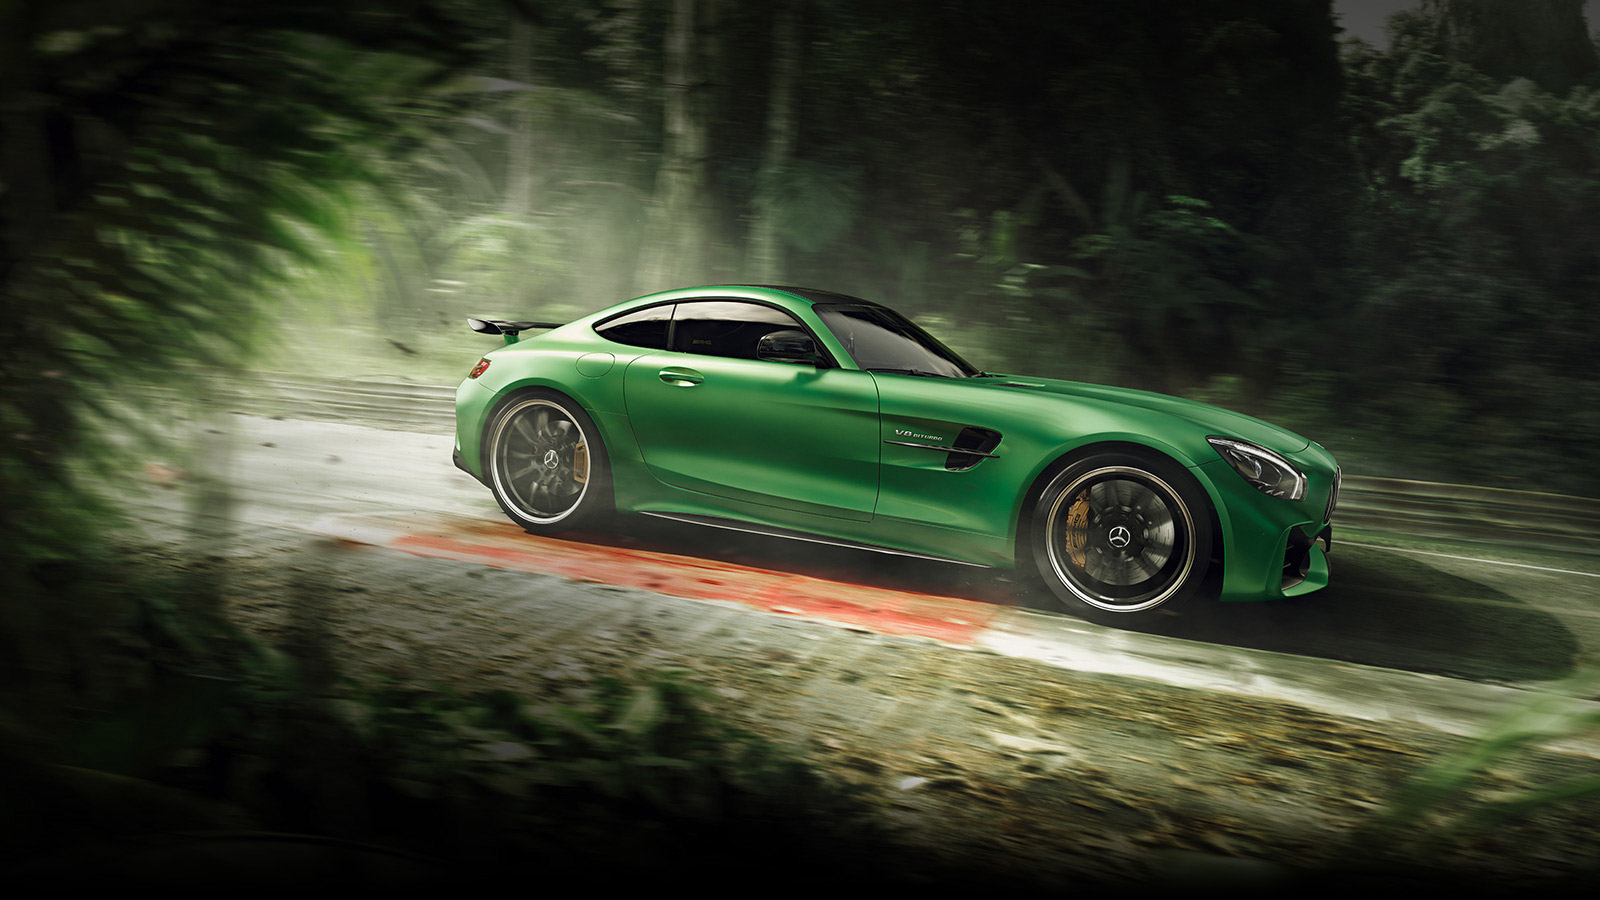 Image Mercedes Amg Gt R Beast Of The Green Hell Share Jpg Csr